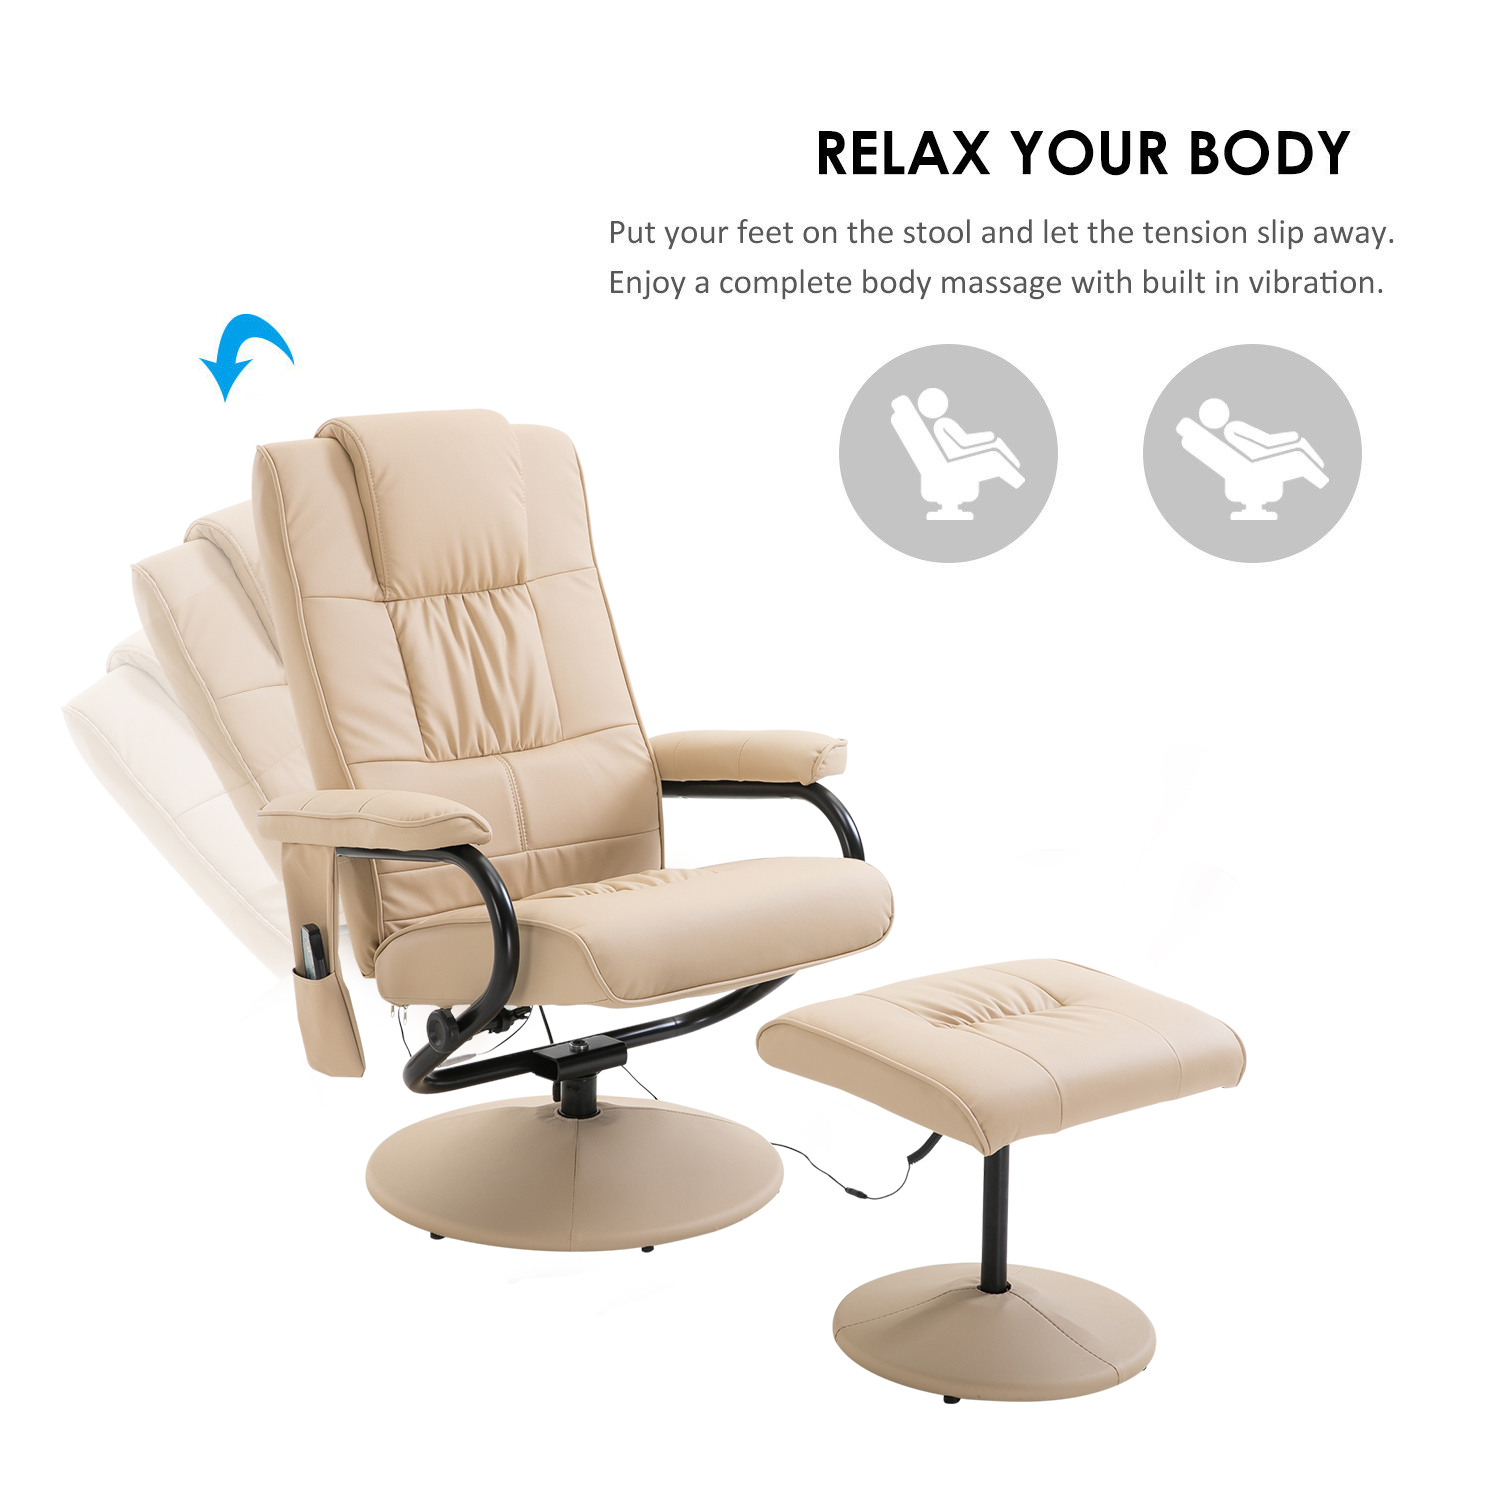 Surprising Details About Faux Leather Massage Recliner Easy Sofa Arm Chair W Foot Stool Beauty Couch Bed Ocoug Best Dining Table And Chair Ideas Images Ocougorg